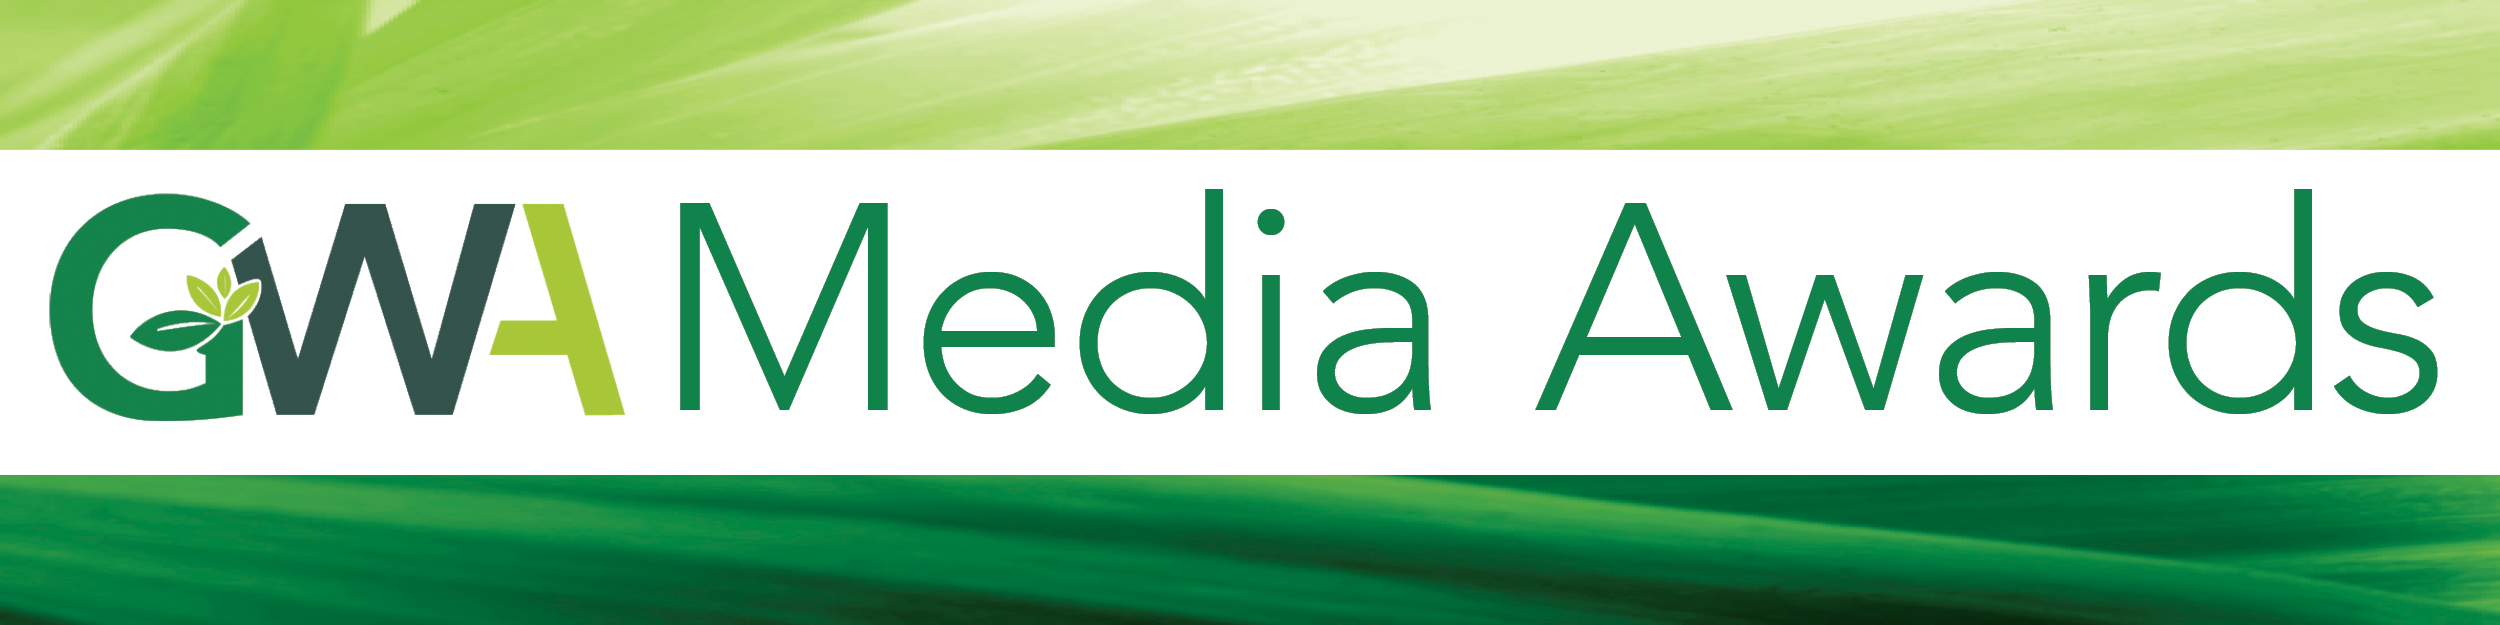 GWA_Media_Awards_Header.png